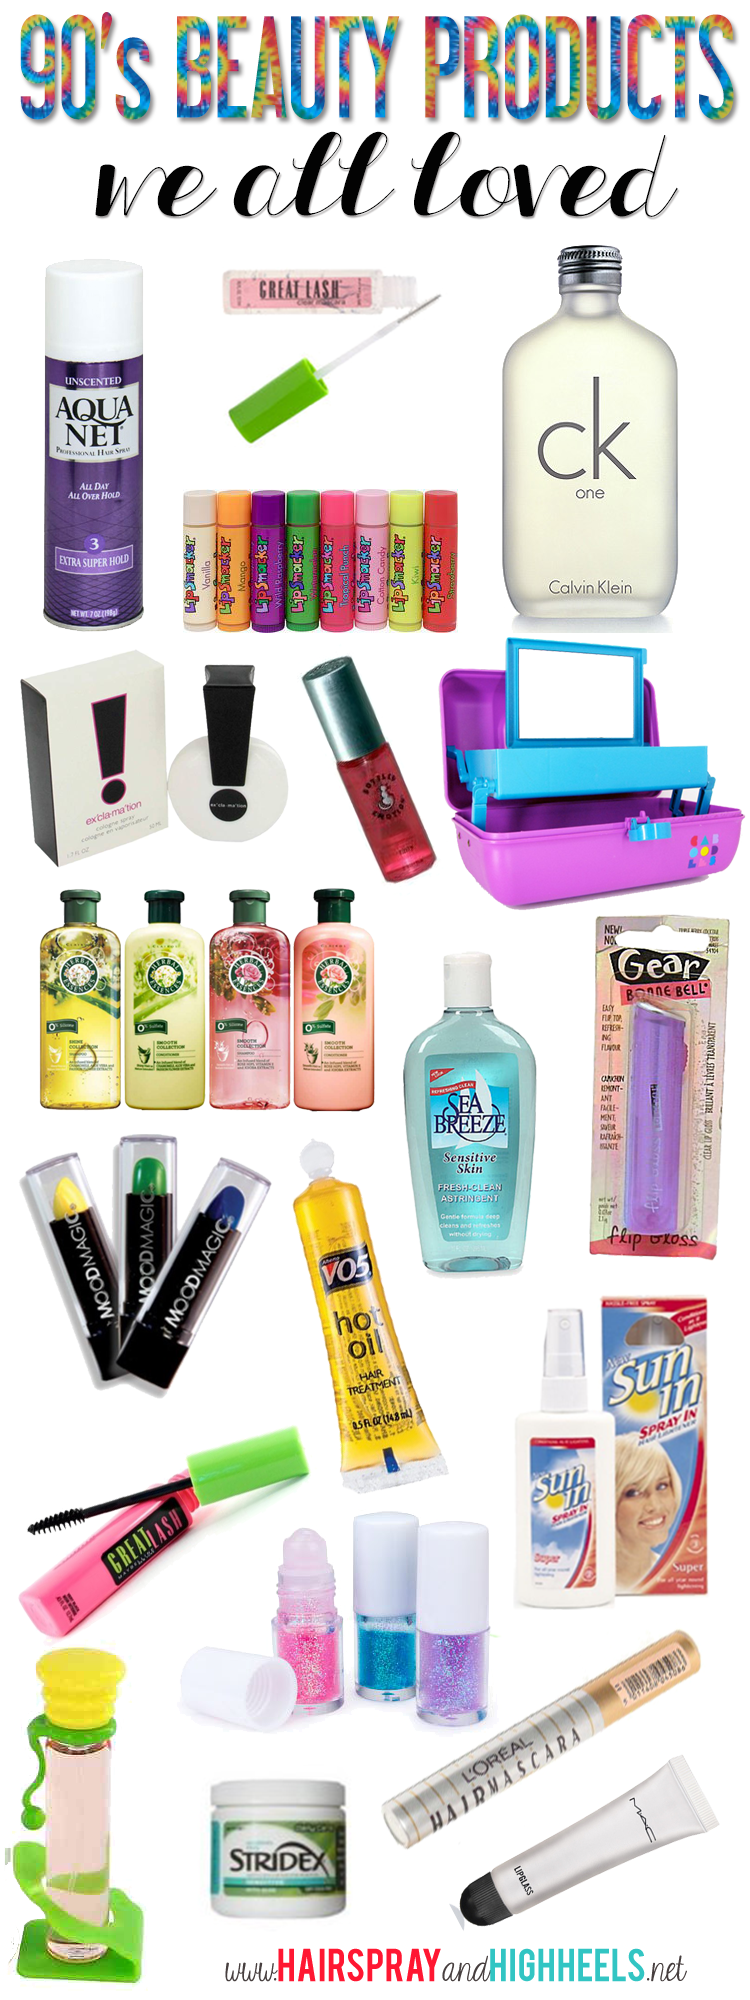 90's Beauty Products! Which of these did you use? My